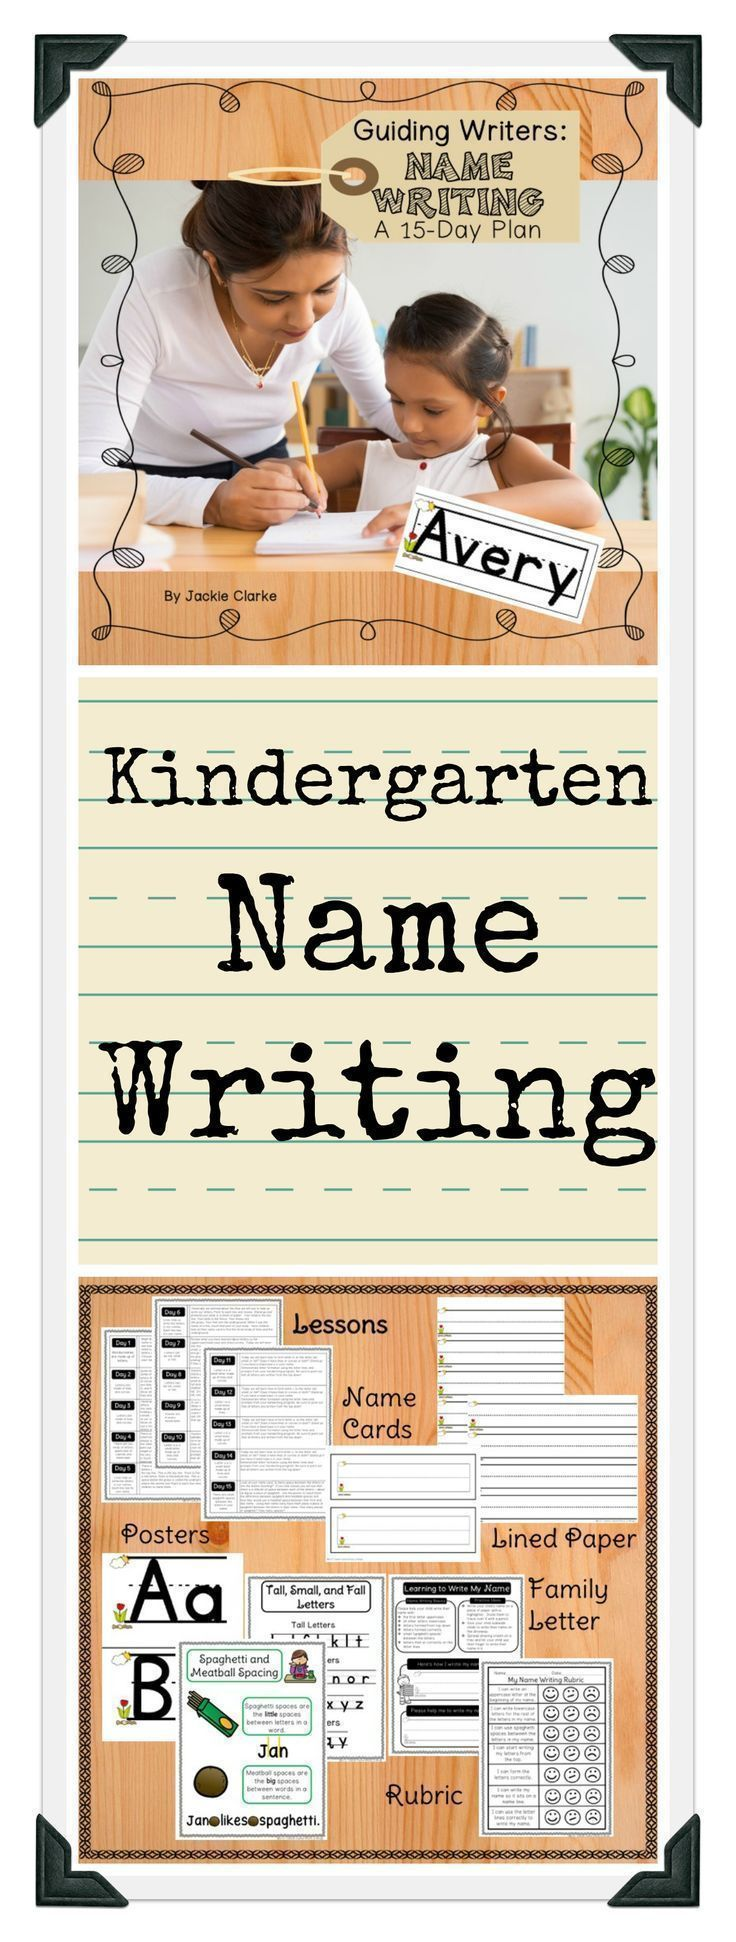 Before children can begin to practice writing their name, they need instruction on letter shapes, uppercase/lowercase letters, and how to use letter lines. The lessons in this resource provide those crucial first steps and were designed to be used as a supplement to your handwriting program.